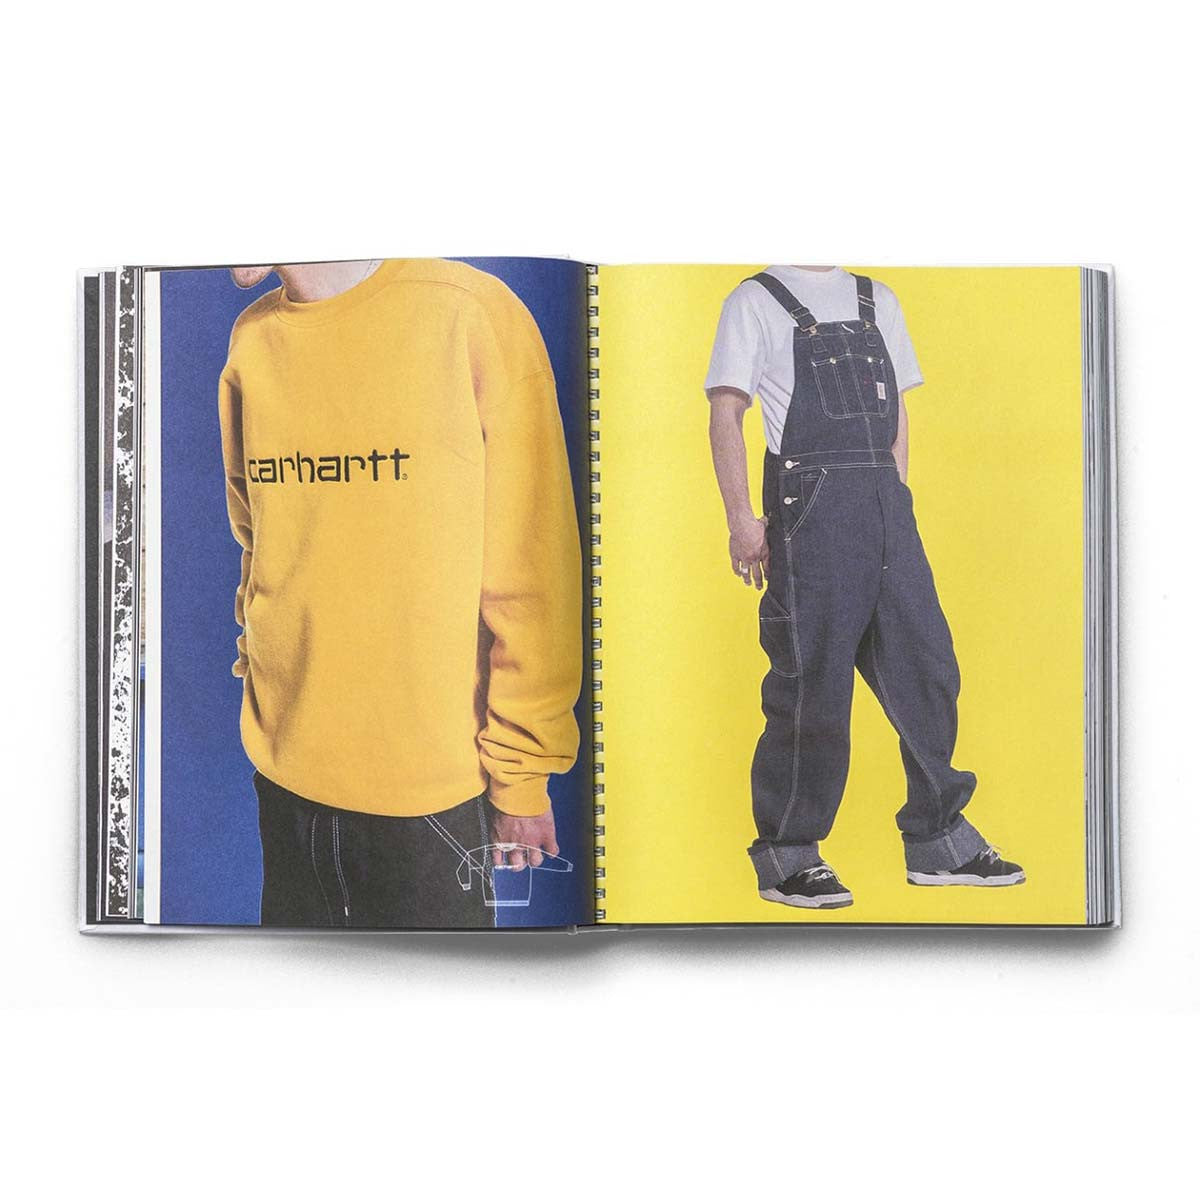 Carhartt WIP Archives Book